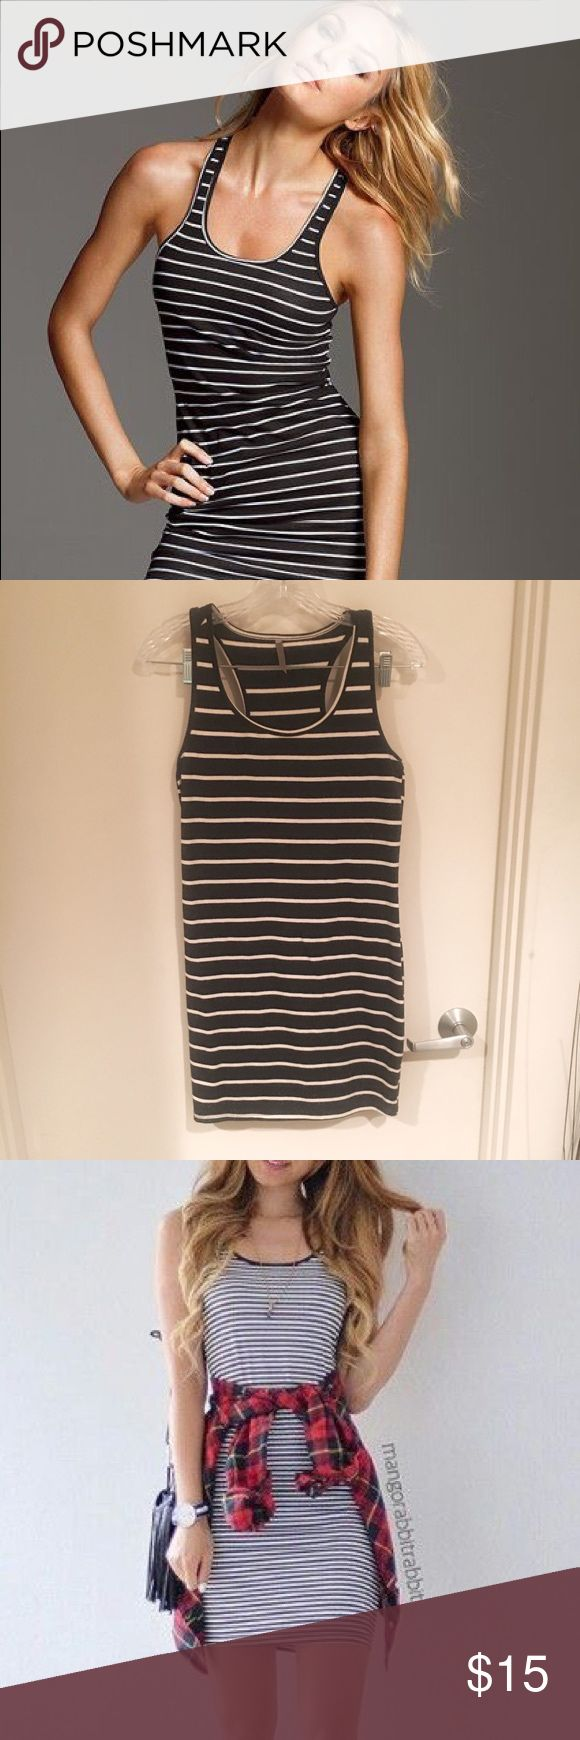 Black and White Striped Mini Dress Super cute fitted black and white striped mini dress that can be dressed up or down, summer or winter 🙂 Second pic is my actual dress! I bought it a long time ago and it's just sat in my closet like my other things lol Dresses Mini